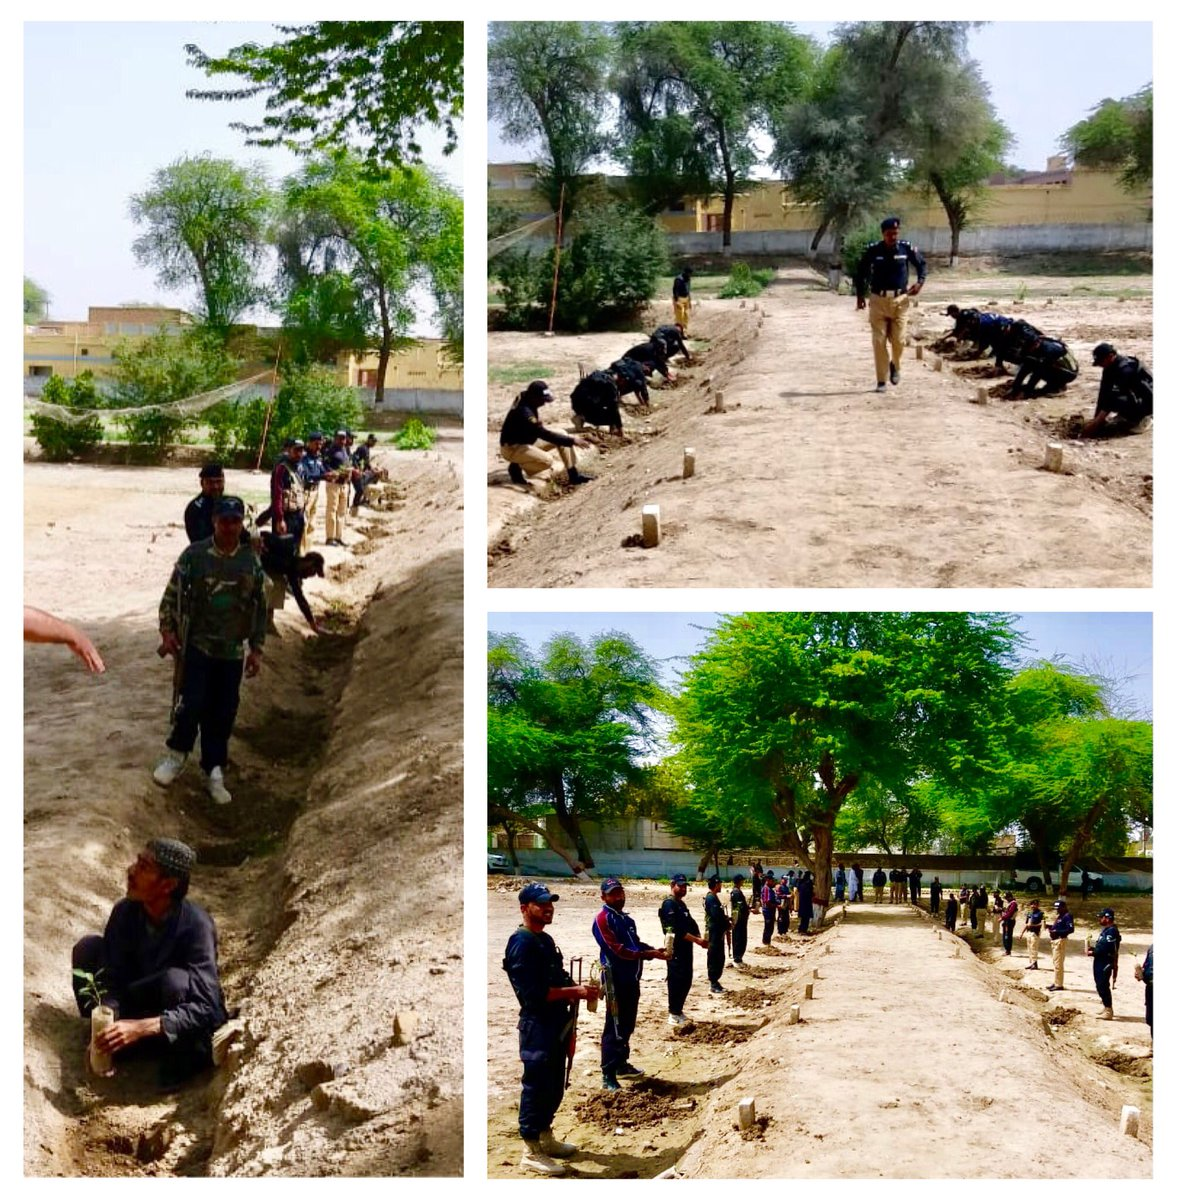 Gr8 to see #Balochistan joining the 10#BillionTreeTsunami with #Plant4Balochistan<br>http://pic.twitter.com/4I4Myrjlns